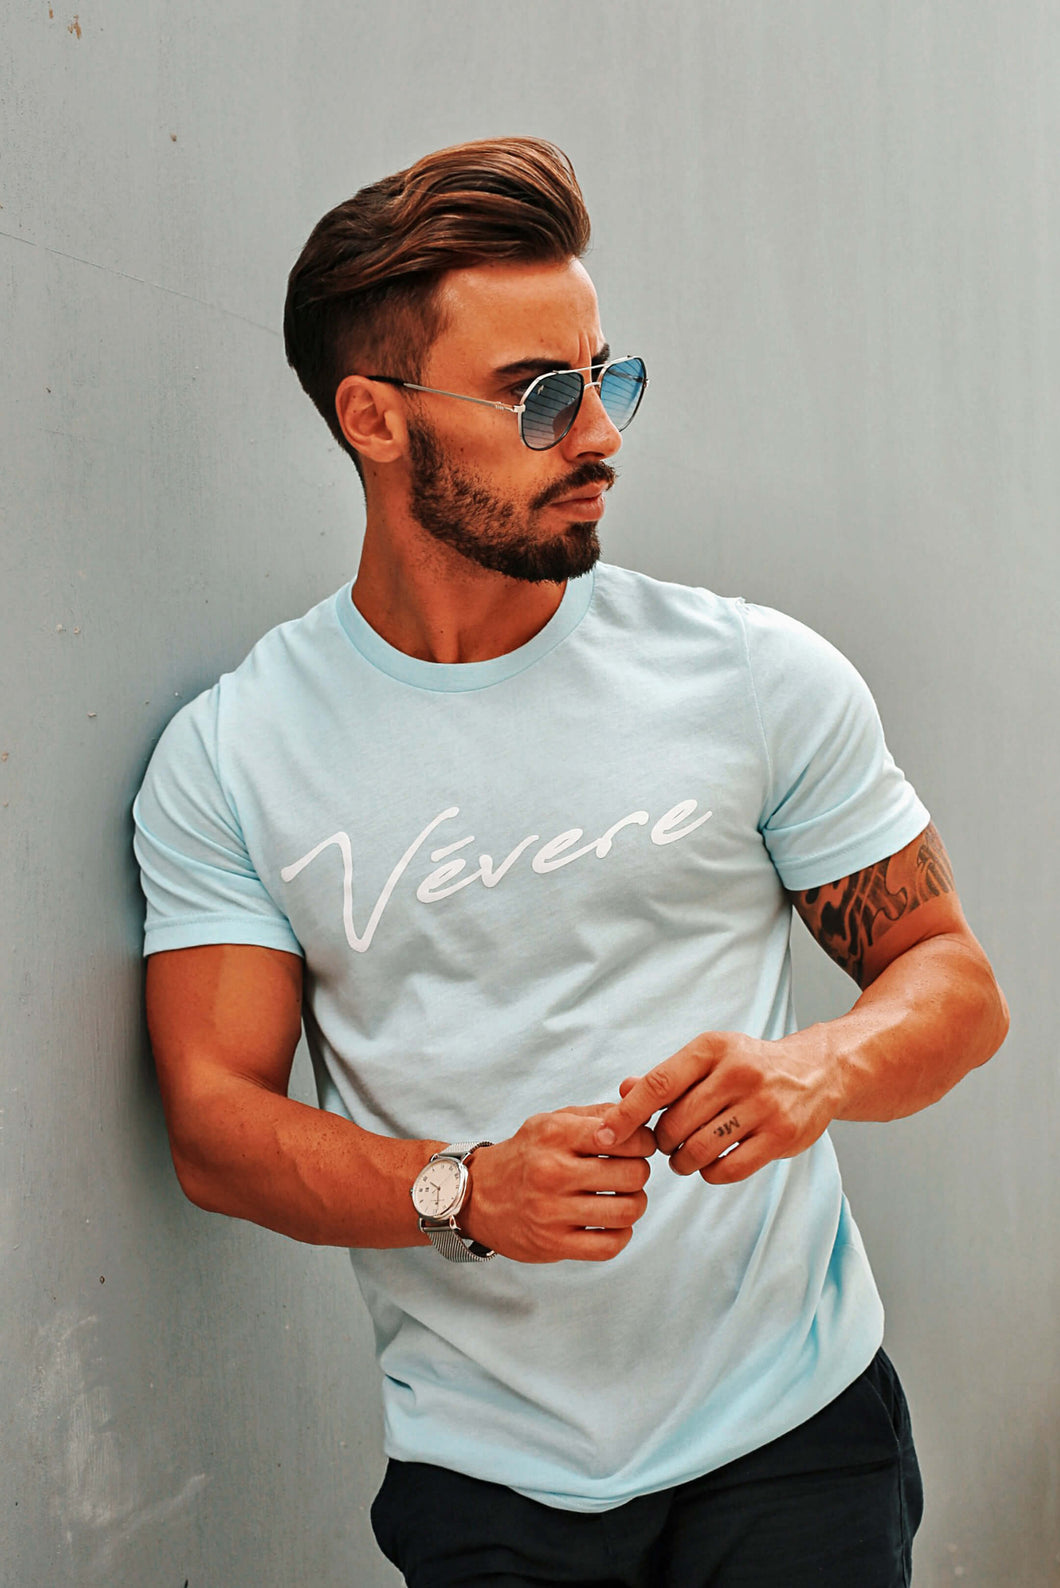 Ischia Ice Blue T-Shirt - Vevere